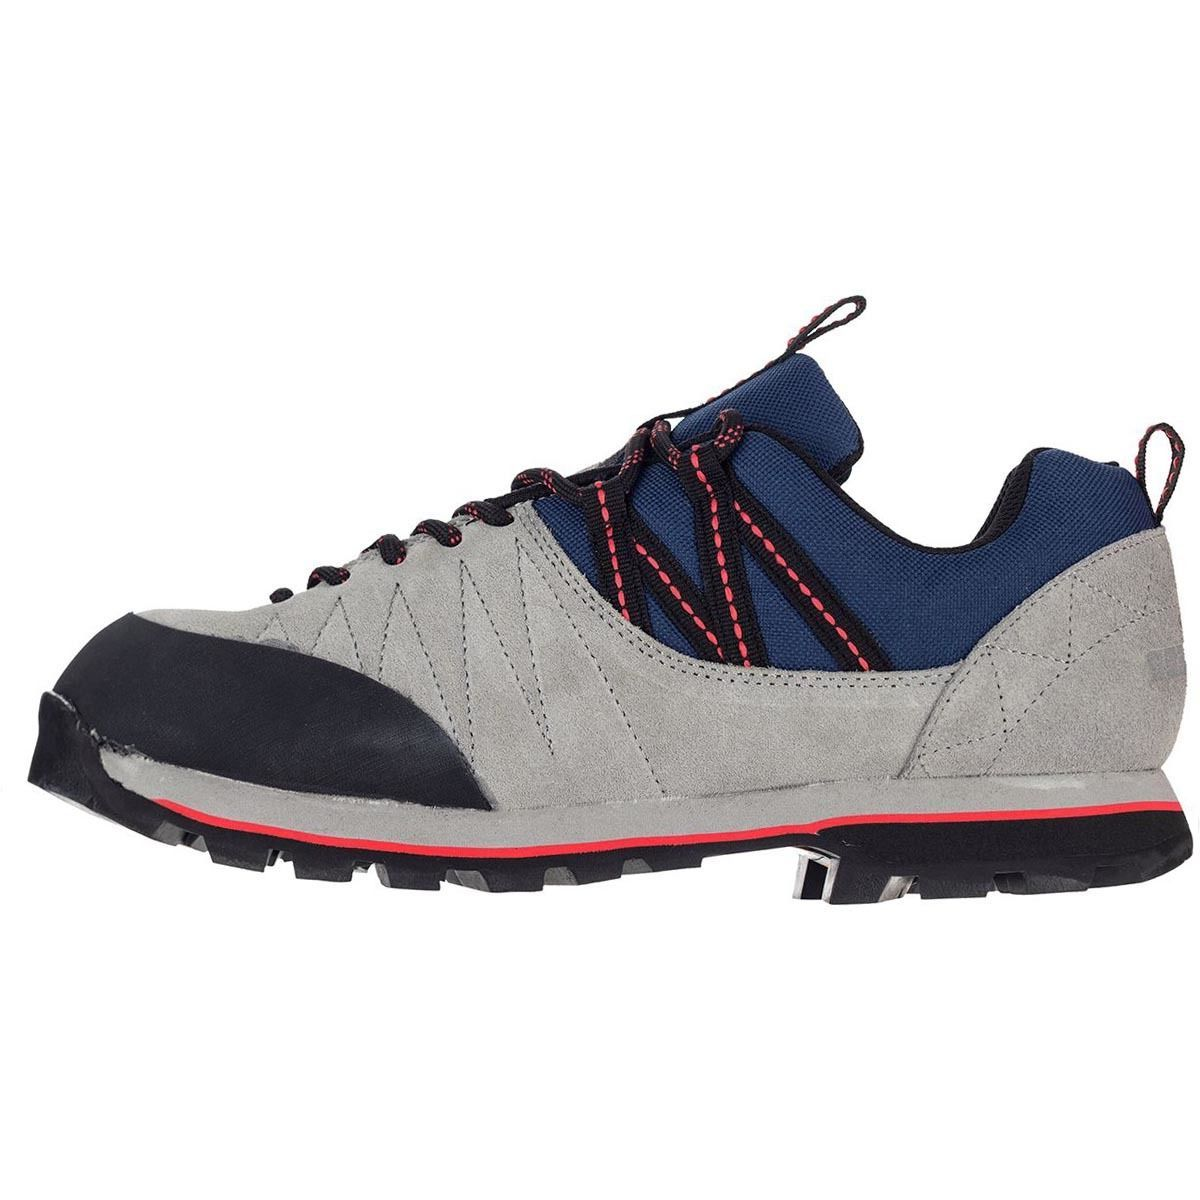 Fronteer Geotrekker Shoe - Men's